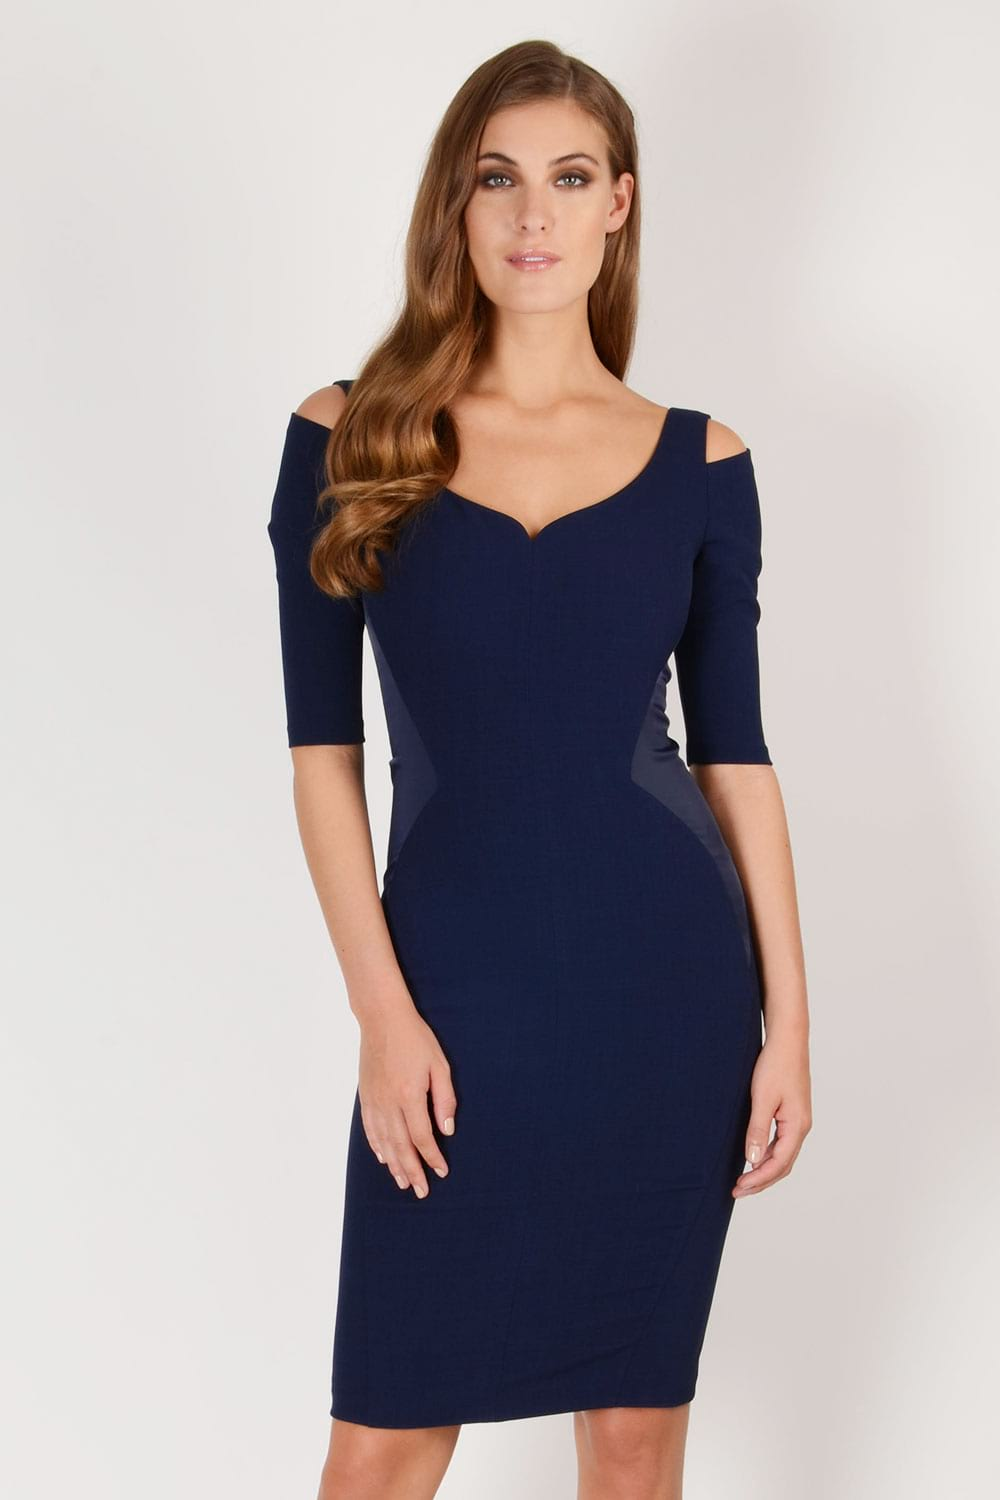 Hybrid Fashion Suki 1260 Cold Shoulder Pencil Dress